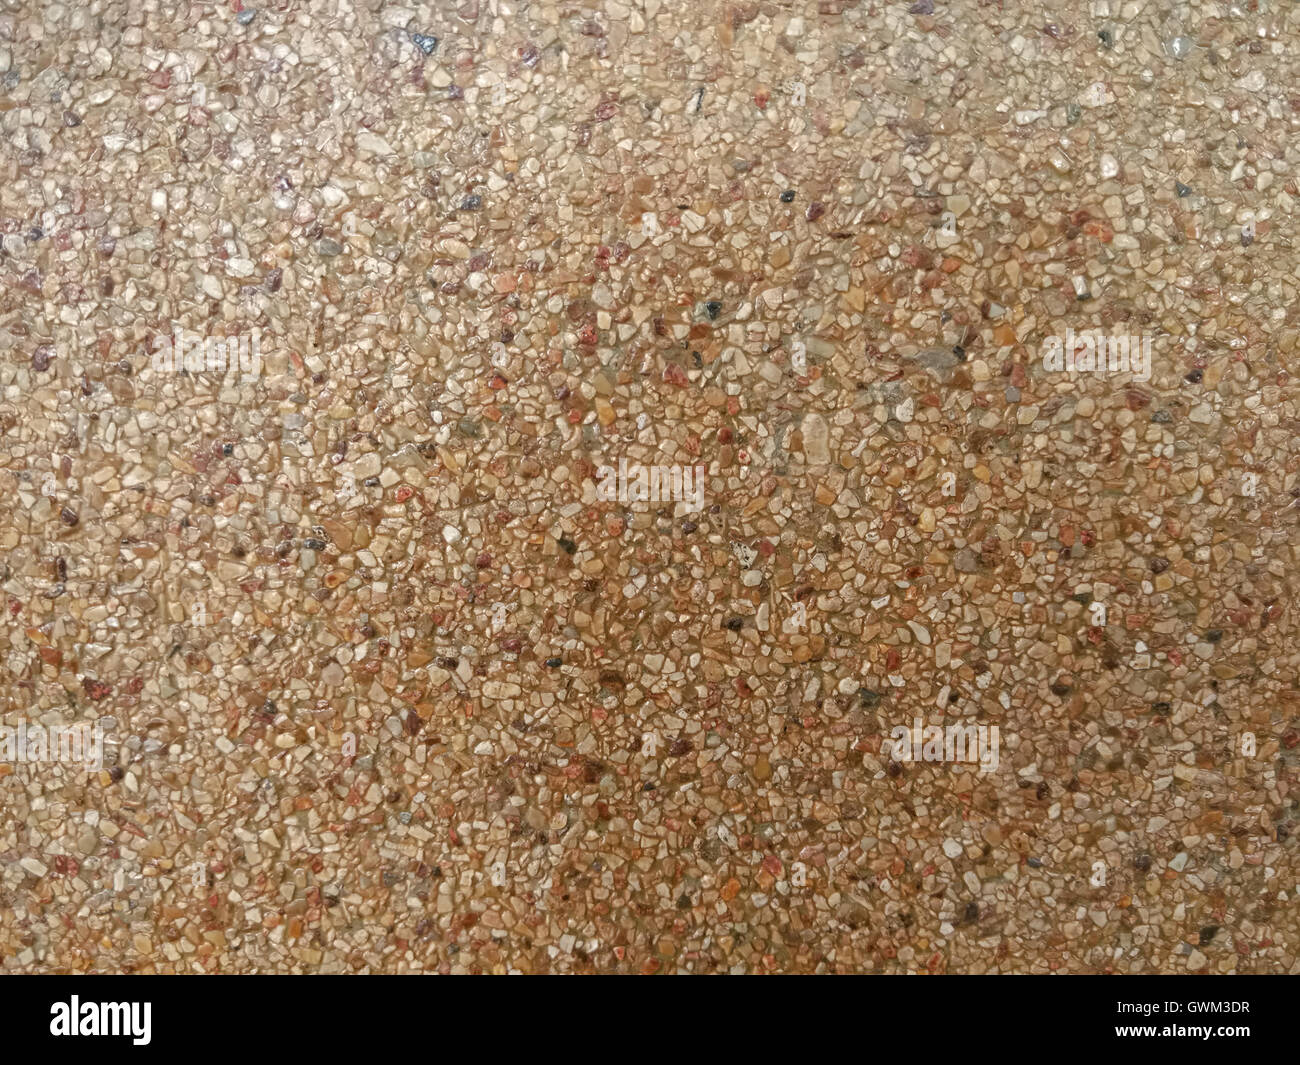 brown and grainy marble floor - Stock Image